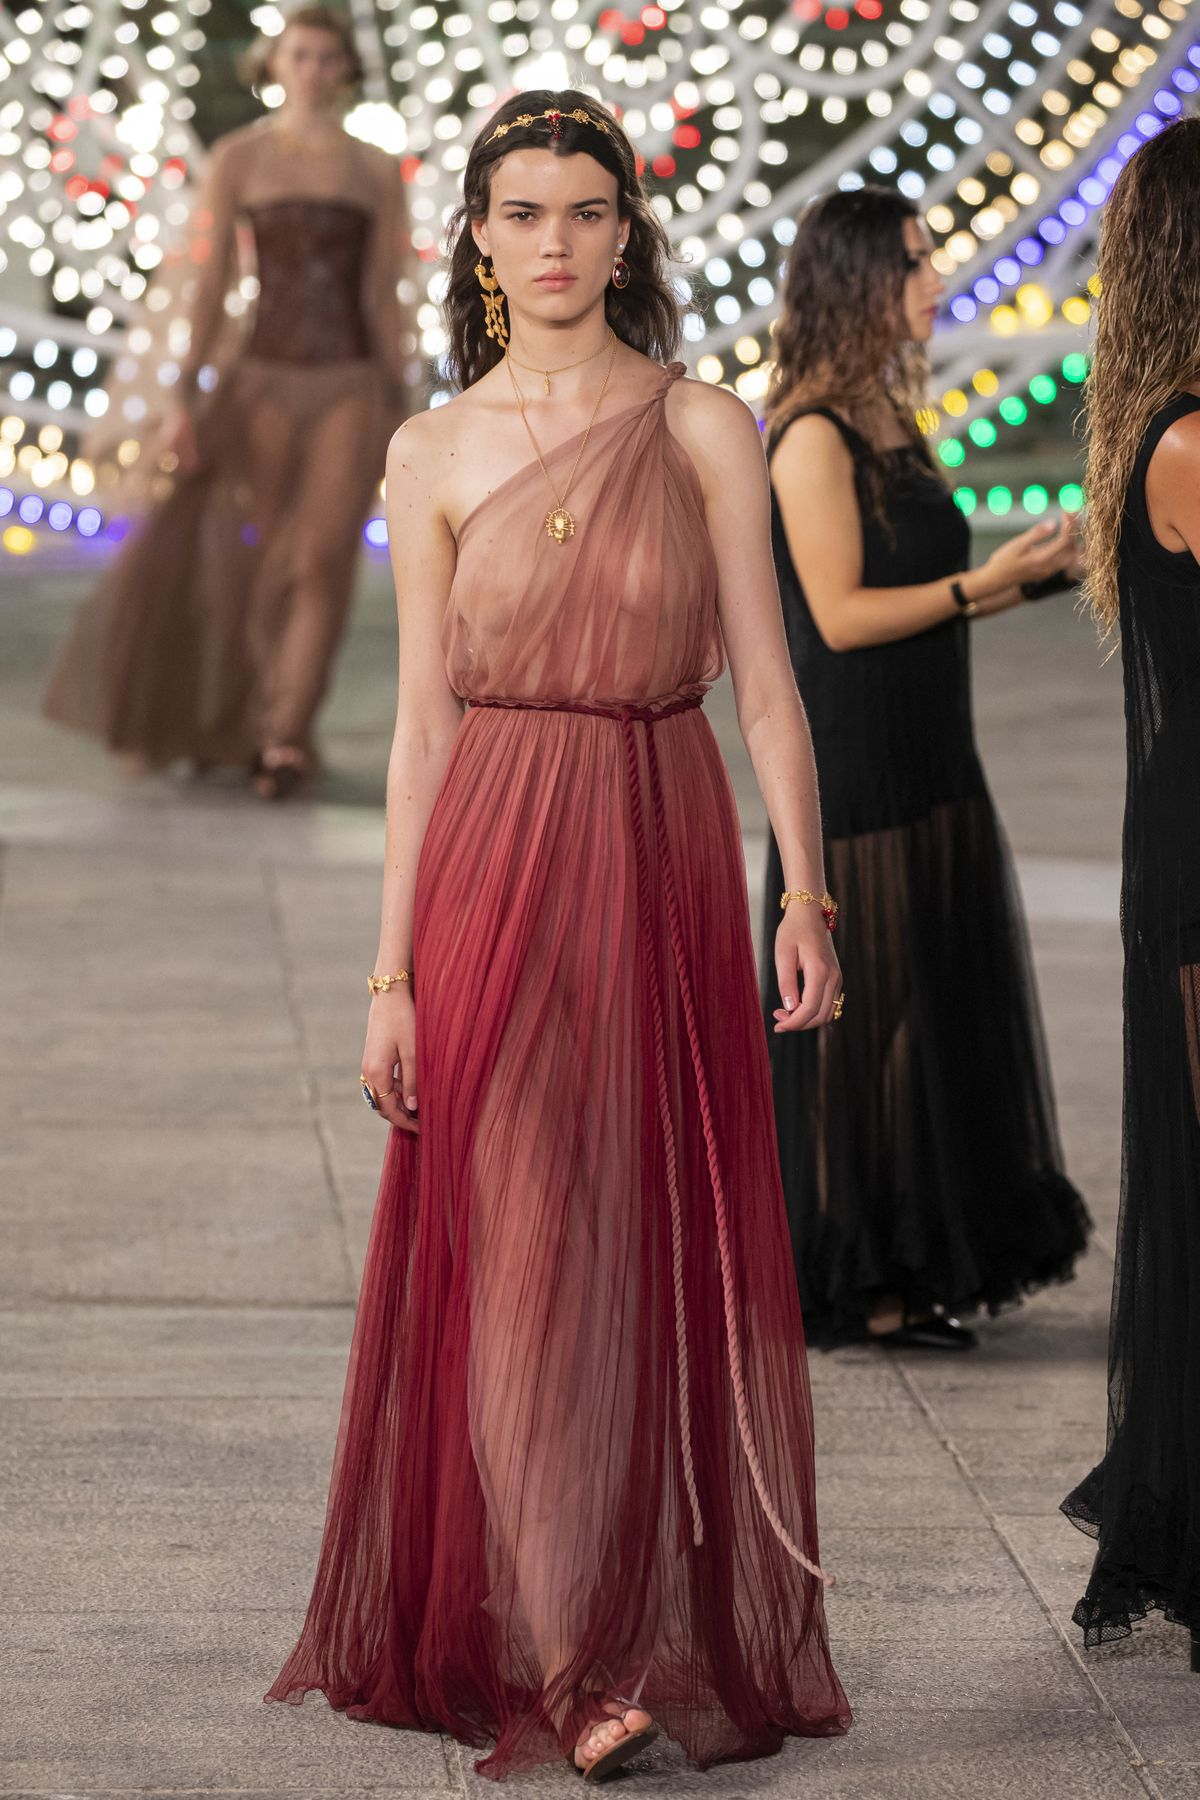 Dior Cruise 2021 Collection (ddp images)